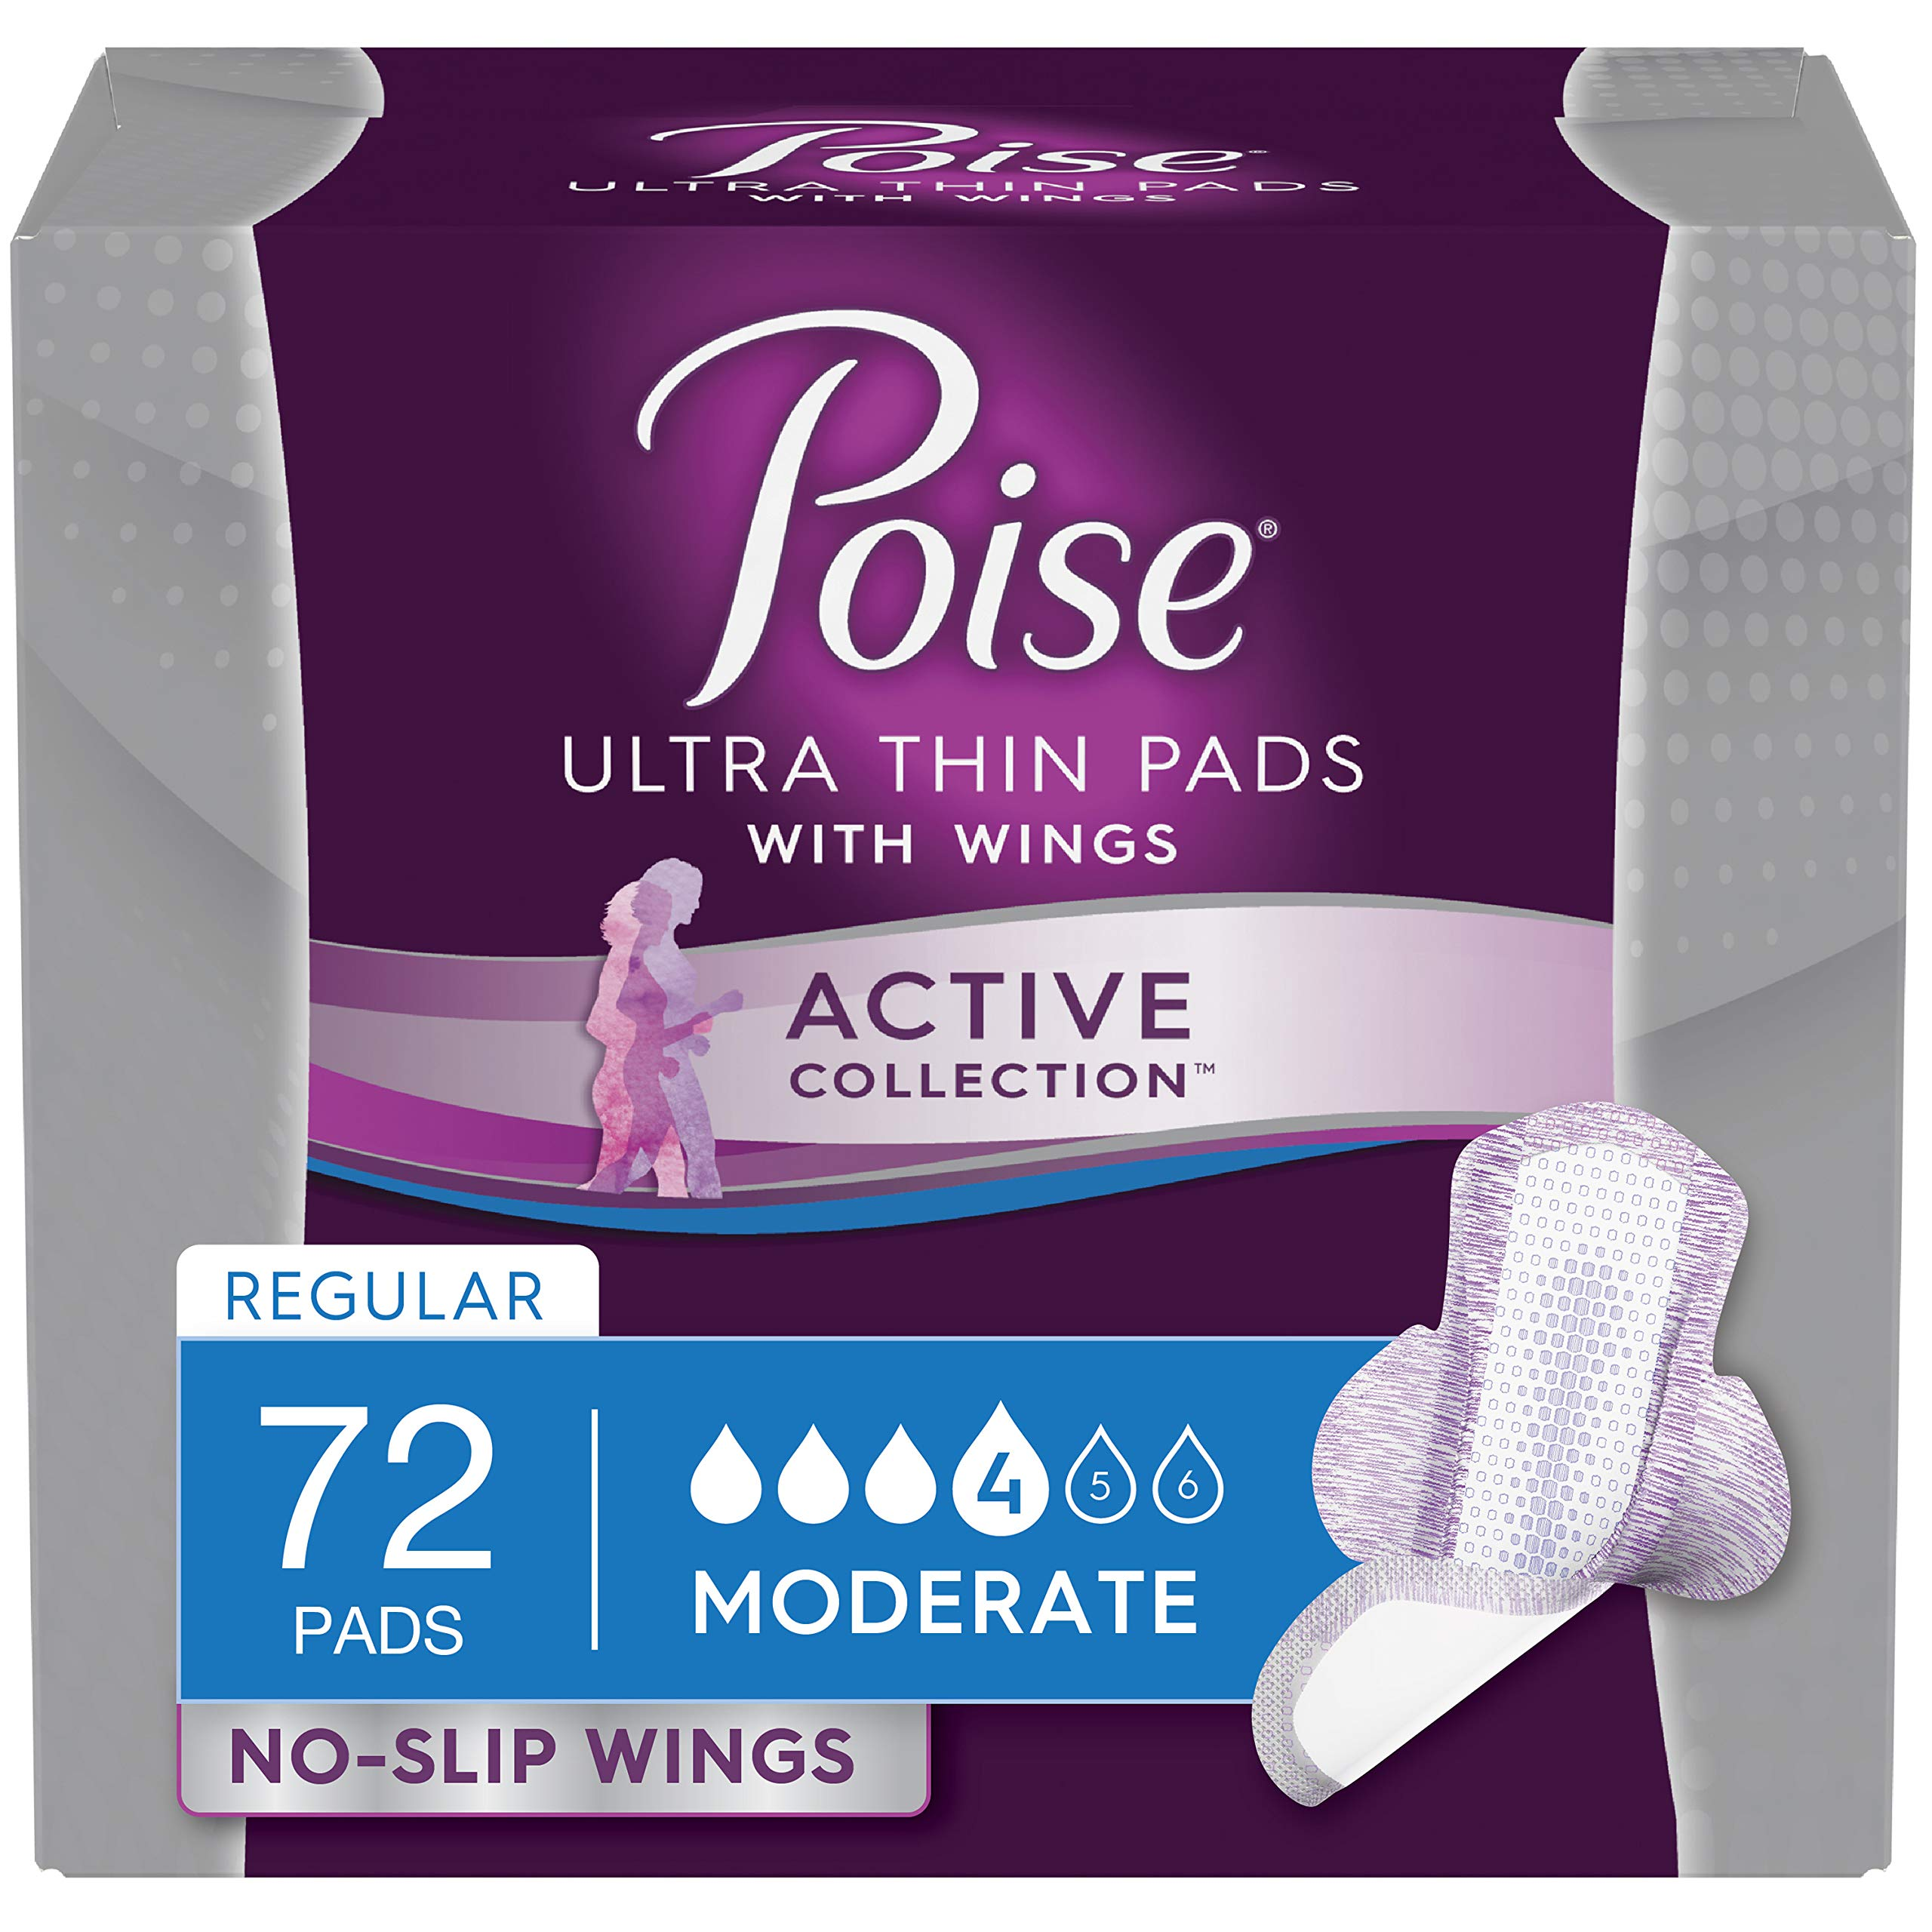 Poise Active Collection Incontinence Pads with Wings, Moderate Absorbency, 72 Count